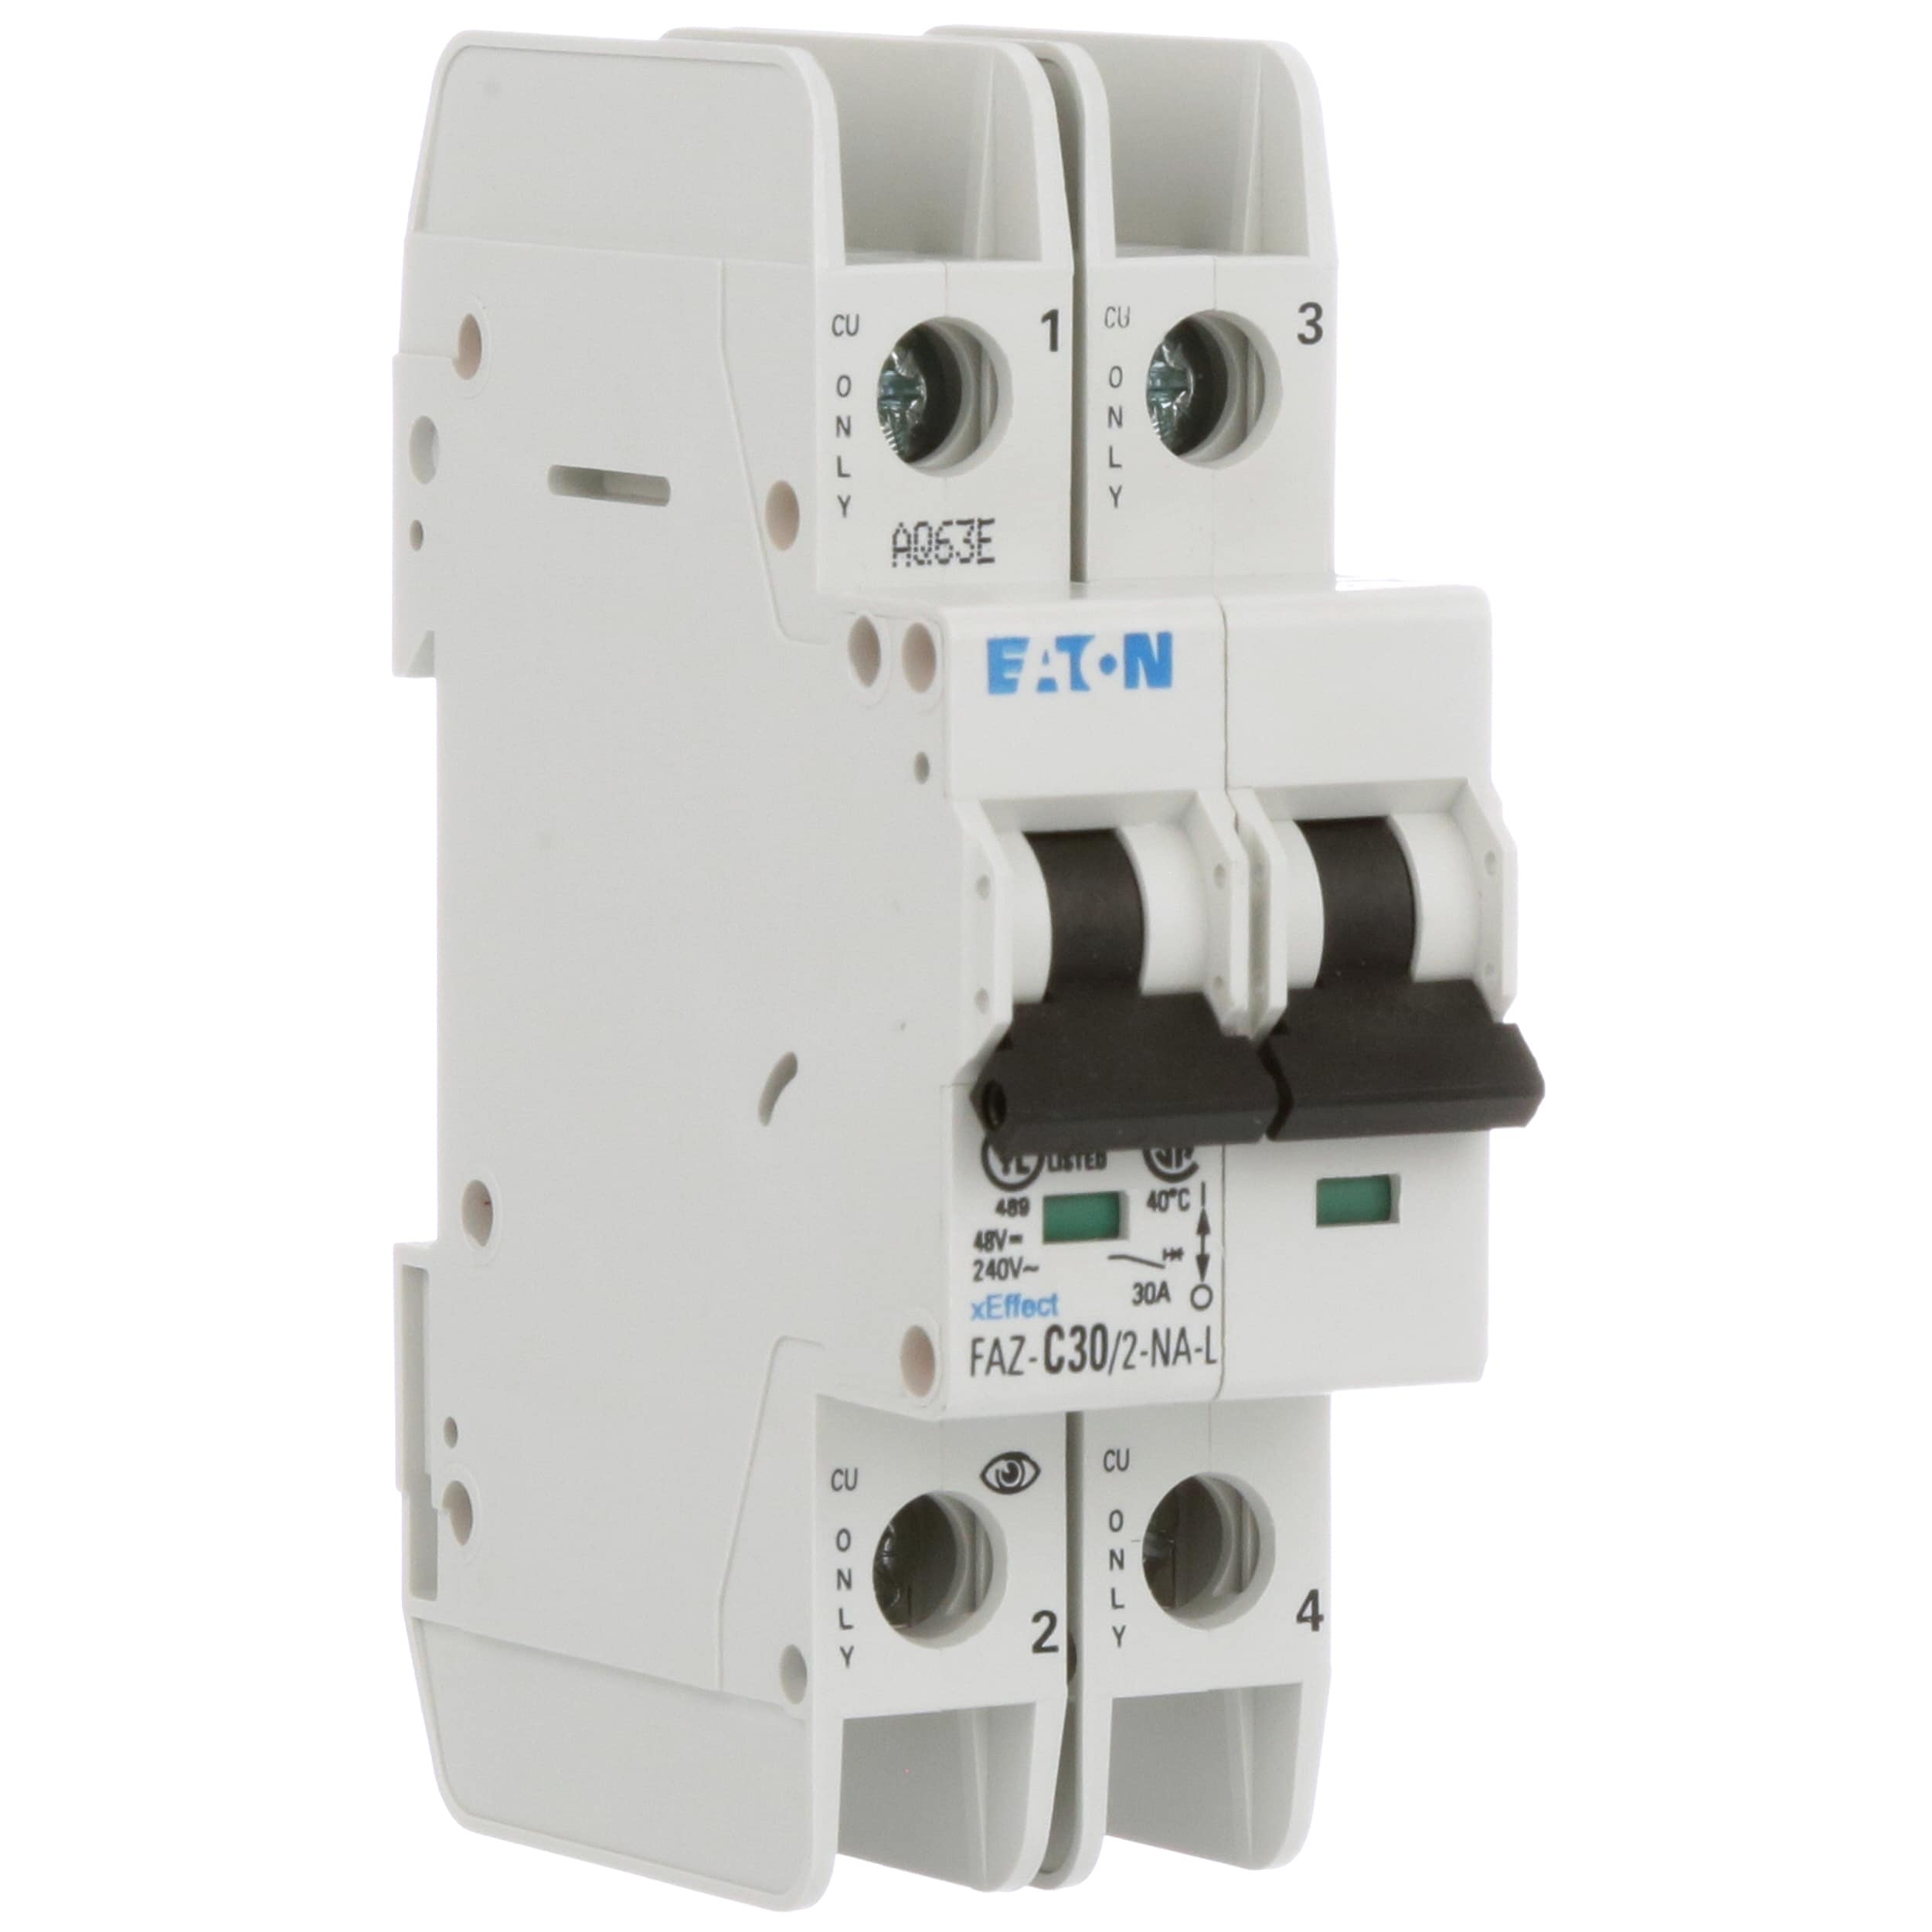 Eaton Cutler Hammer Faz C30 2 Na L Circuit Breaker C Mcb Is A Device Designed To Protect Circuit39s Curve Pole 30a Ul489 Branch 240vac Scr Terms Allied Electronics